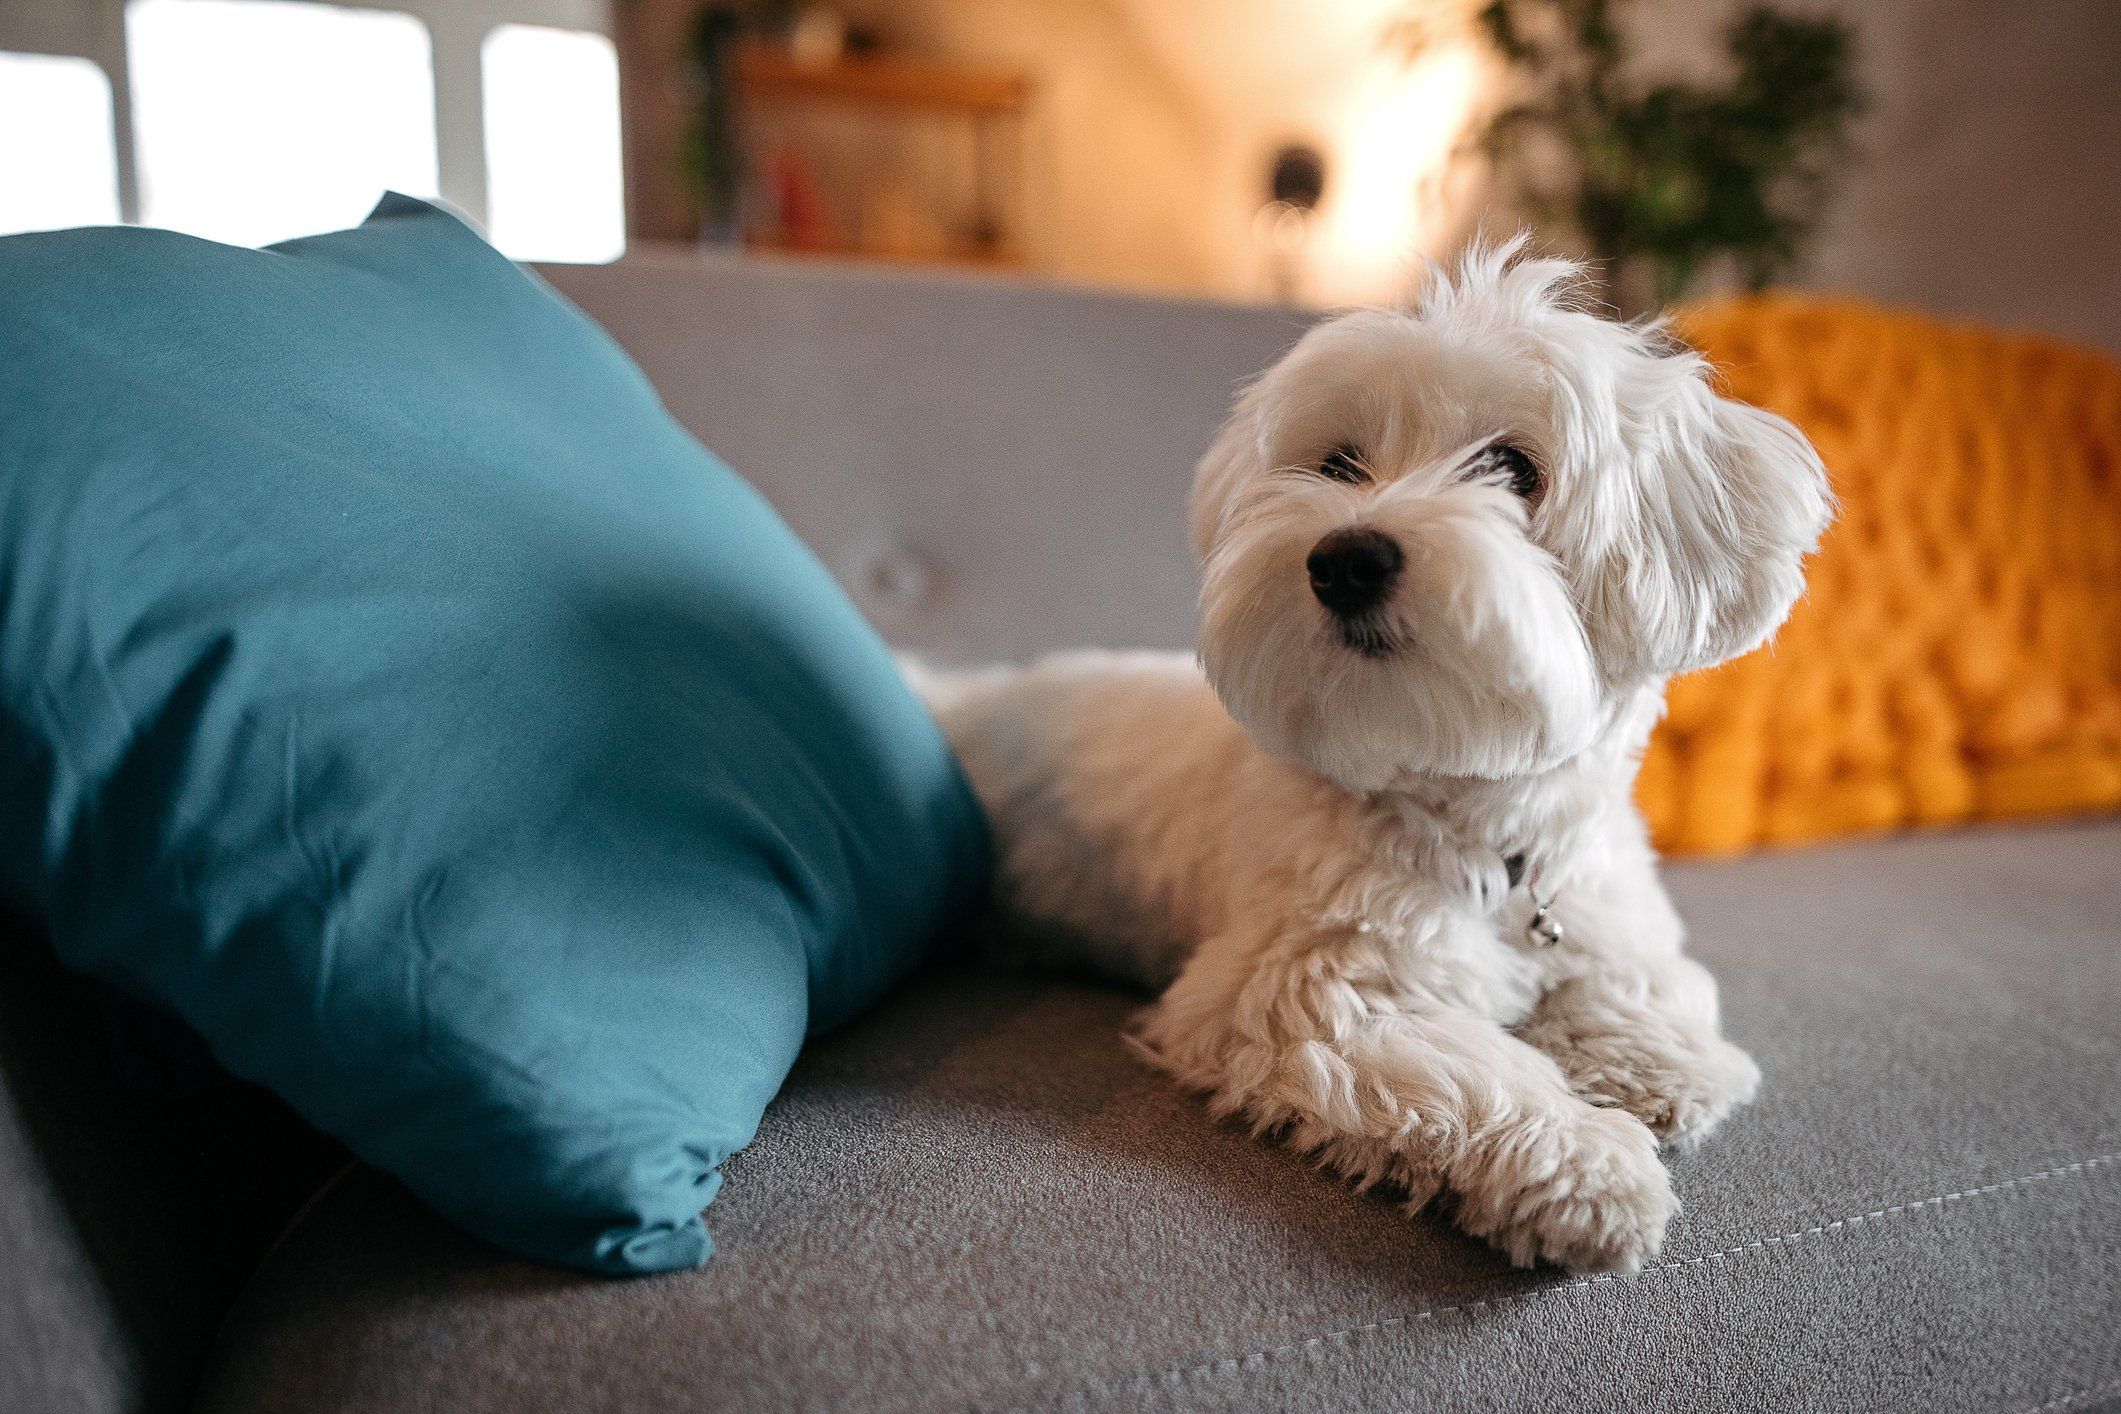 Maltese dog relaxing on sofa at modern living room | Photo: Getty Images